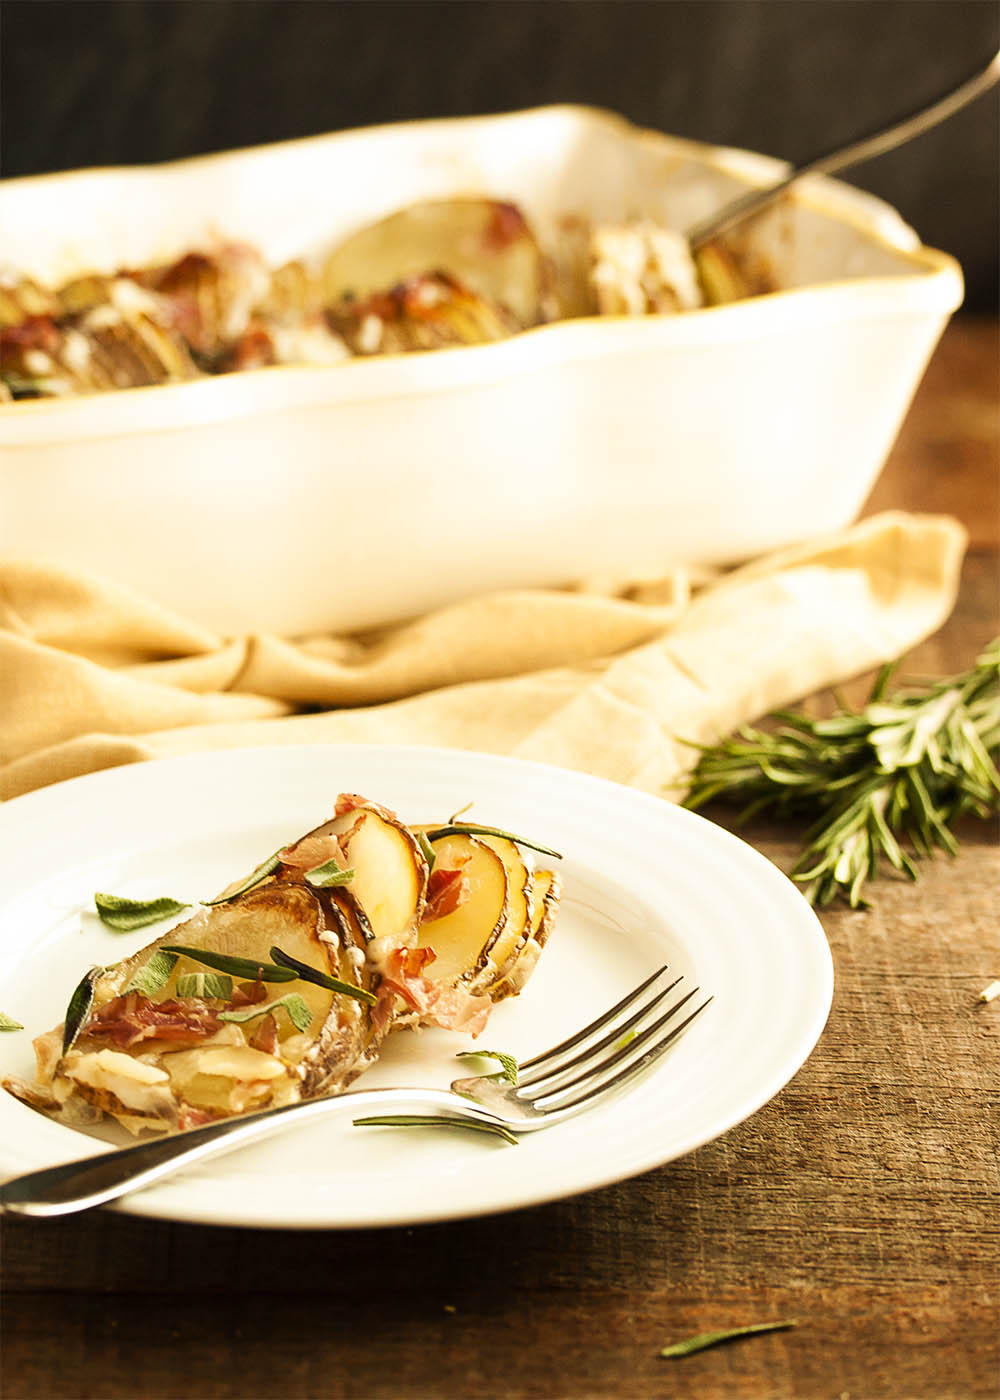 A plate with a serving of hasselback potato gratin with the casserole dish in the background.